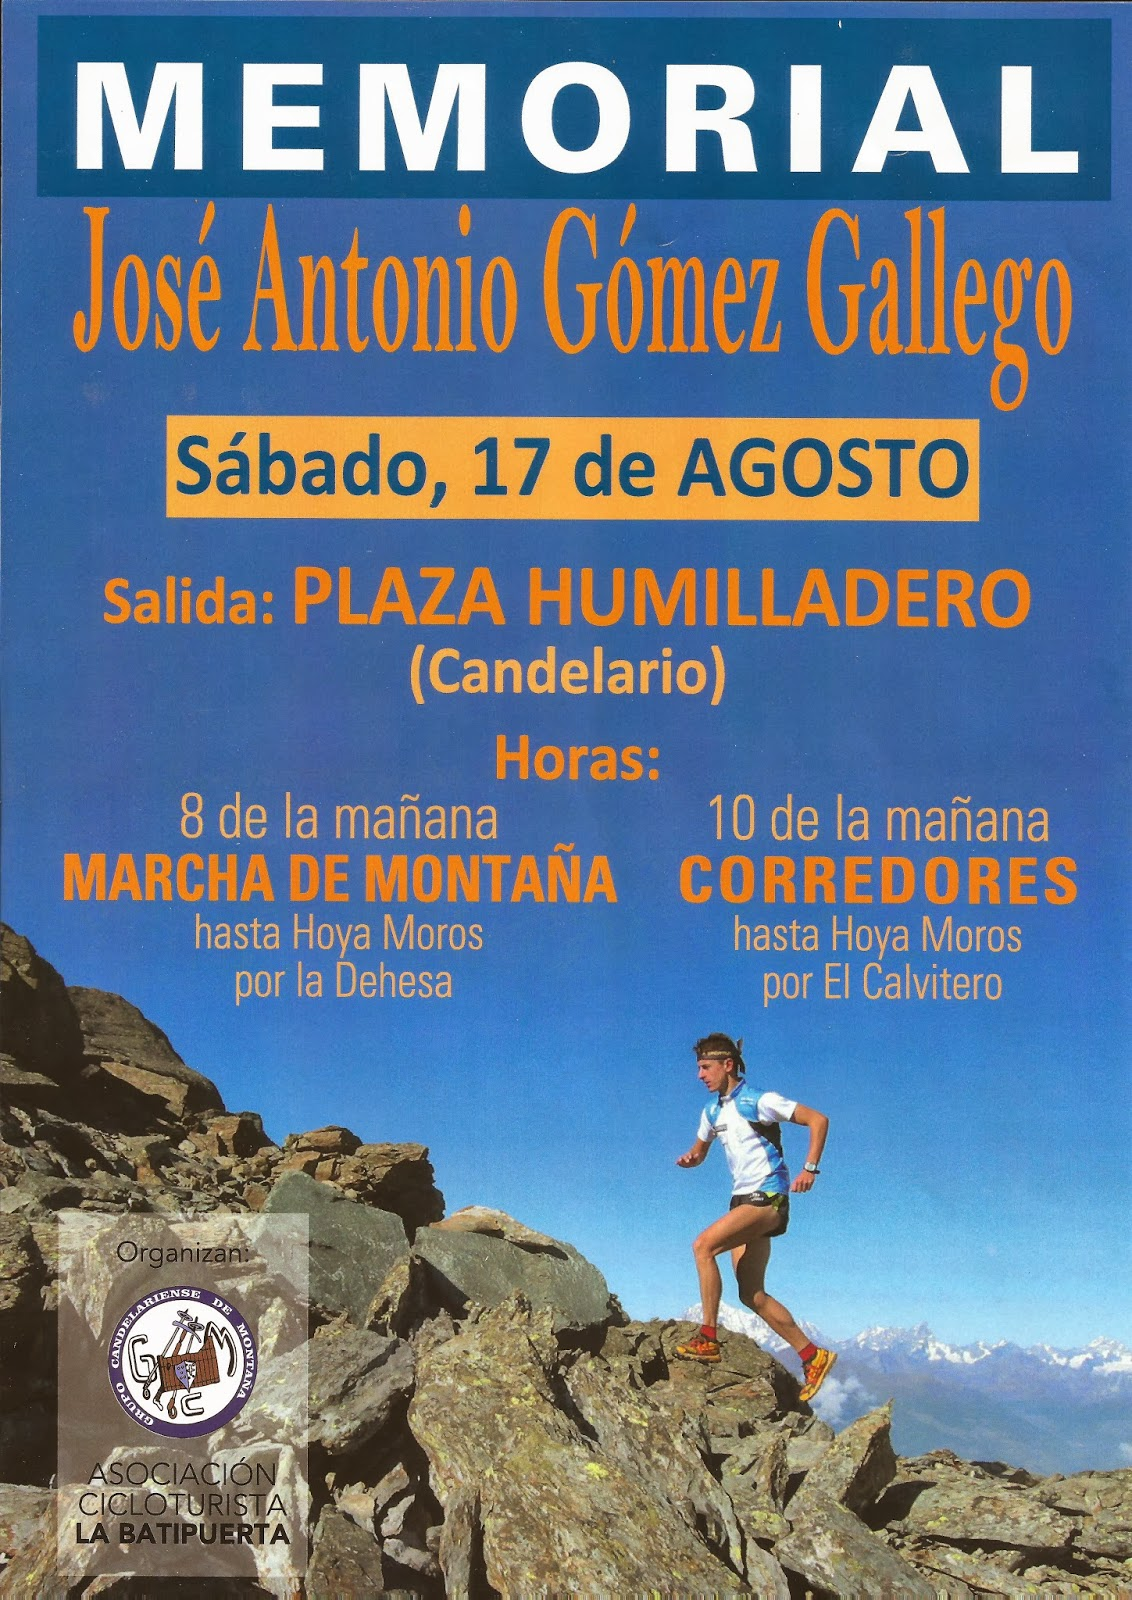 Memorial Jose Antonio Gómez Gallego